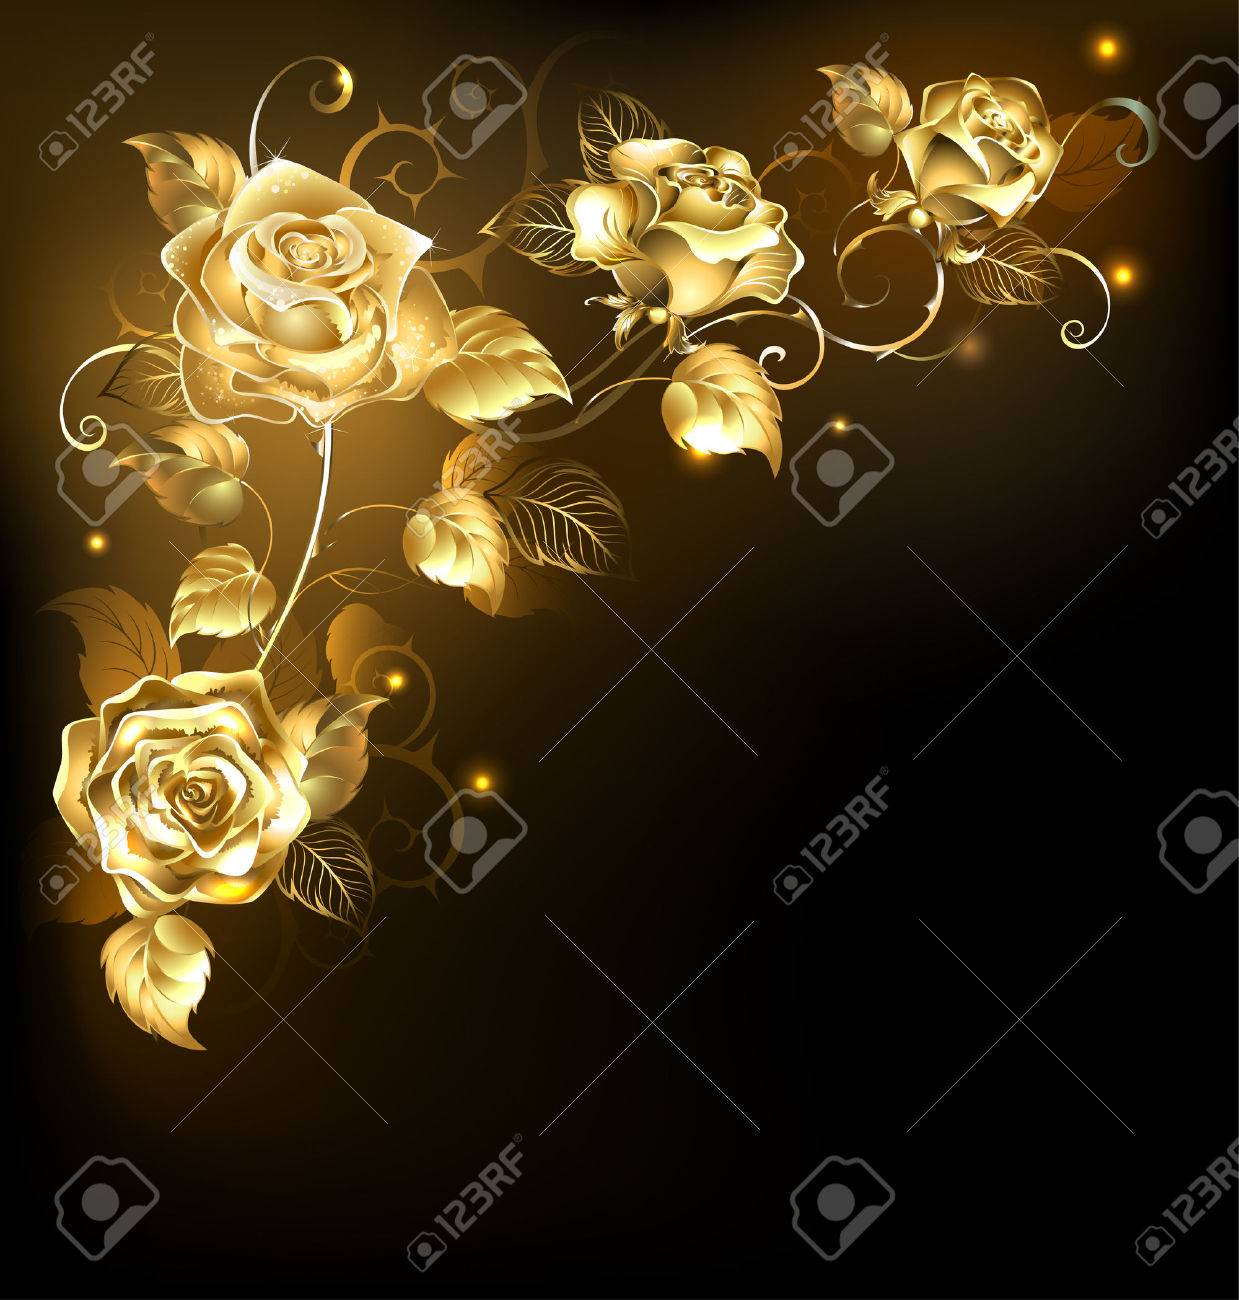 Twisted Gold Roses On A Black Background Gold Rose Royalty Free Cliparts Vectors And Stock Illustration Image 53171319